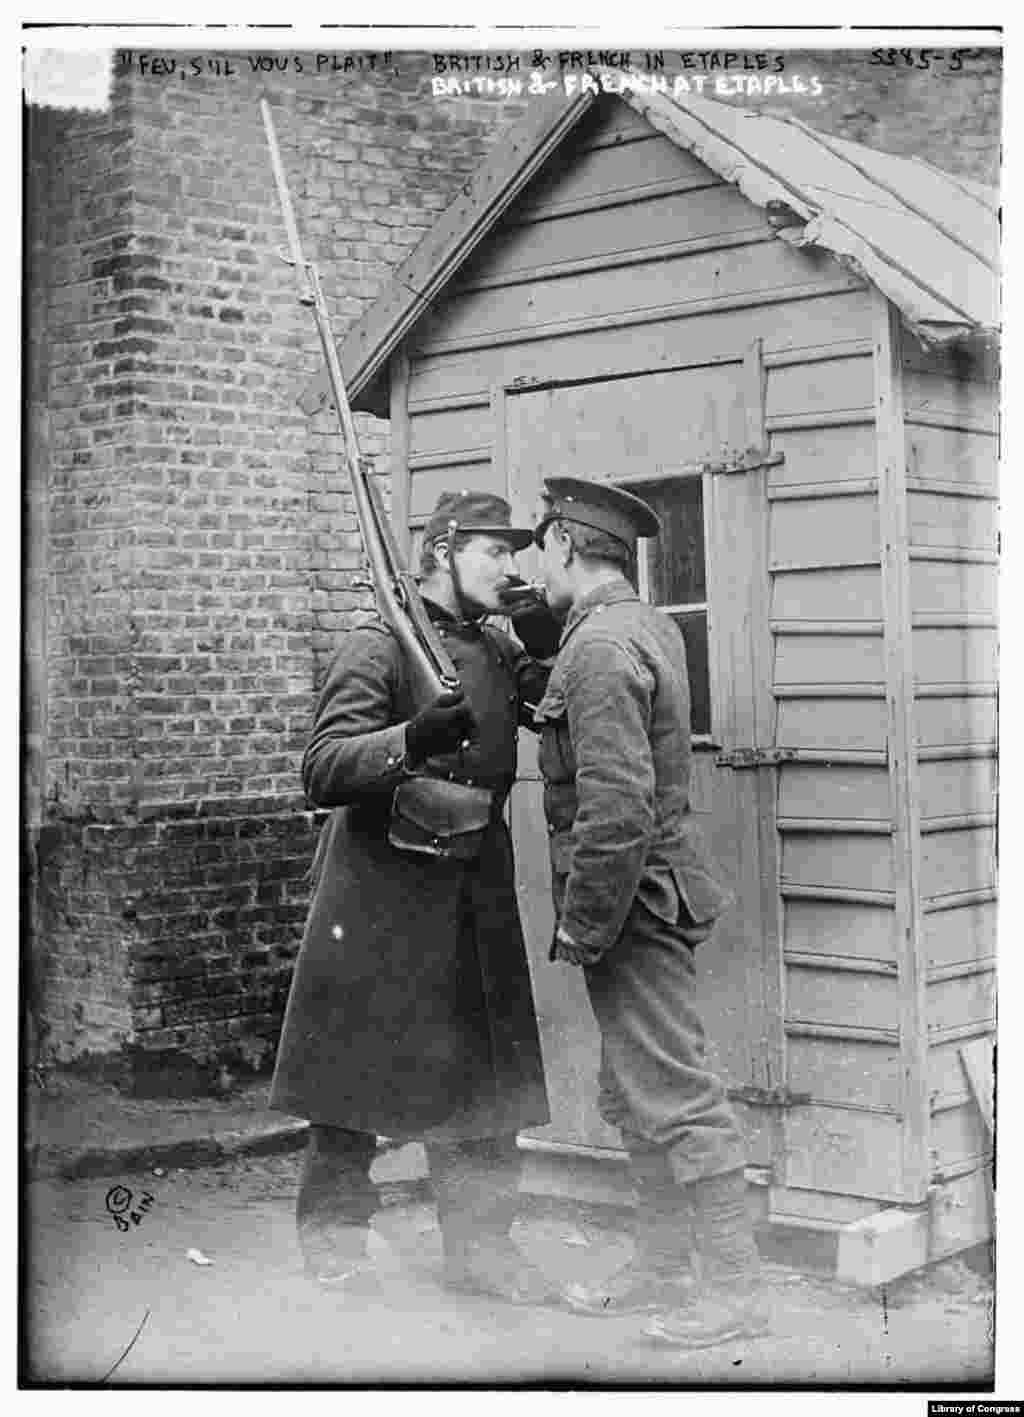 British and French soldiers light a cigarette at Etaples in northern France at the beginning of World War I. Although the source of the flu strain that devastated the world from 1918-1920 is disputed, many believe the pandemic began in this French military camp.